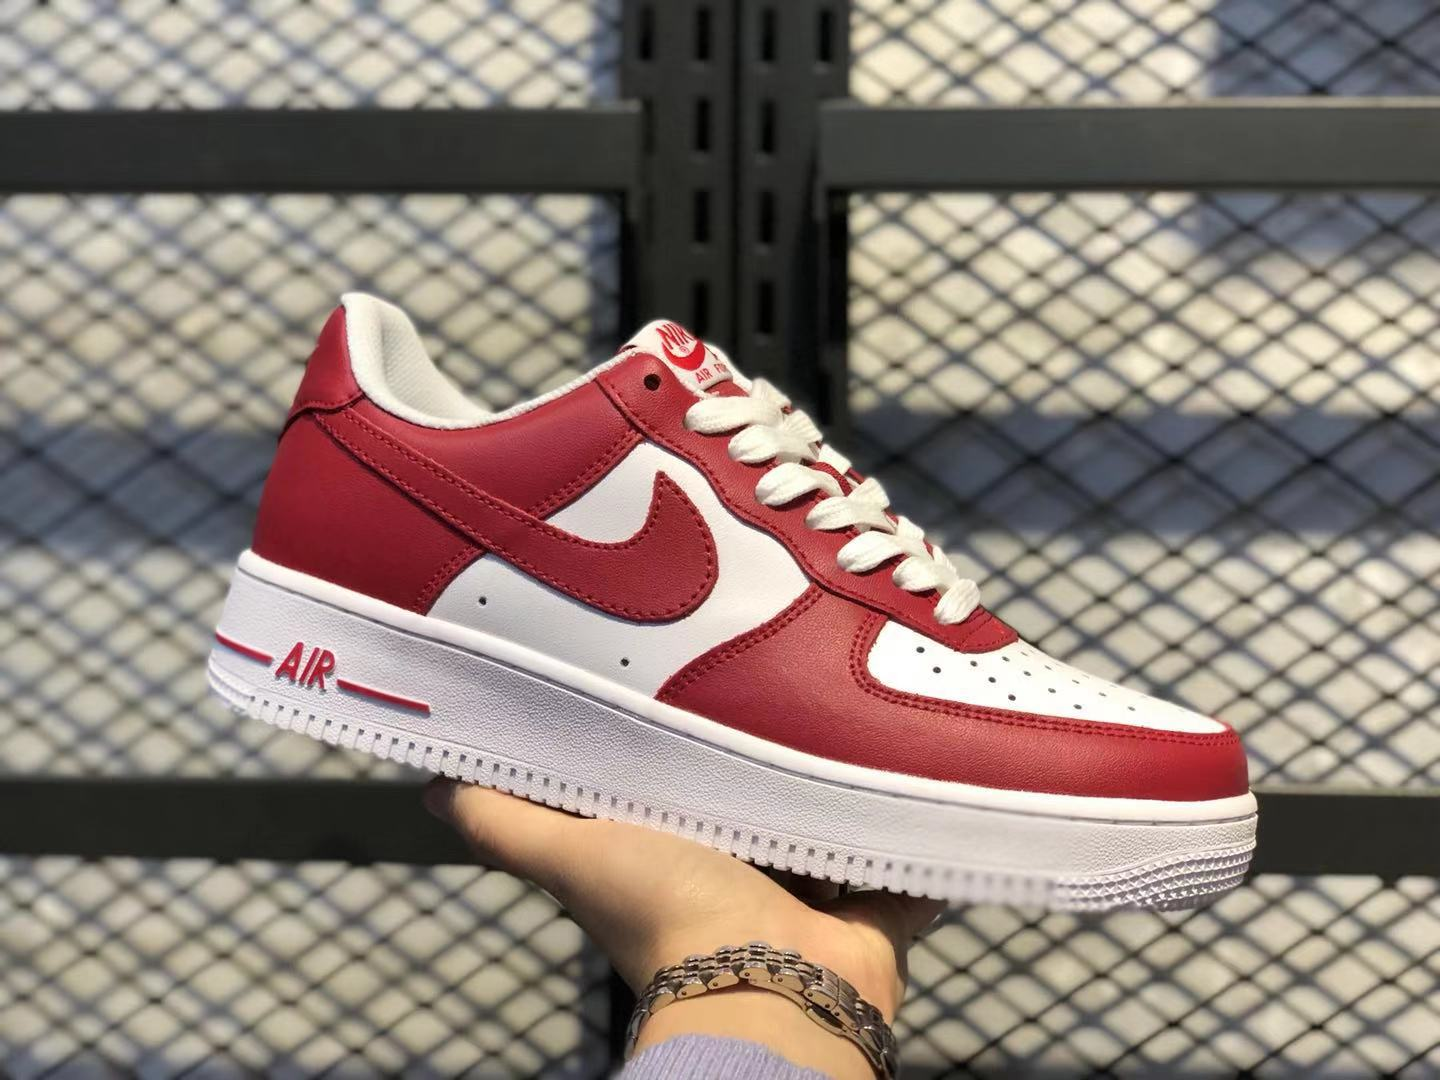 Nike Air Force 1 Low Team Red White Sneakers Online Buy AQ4134-600